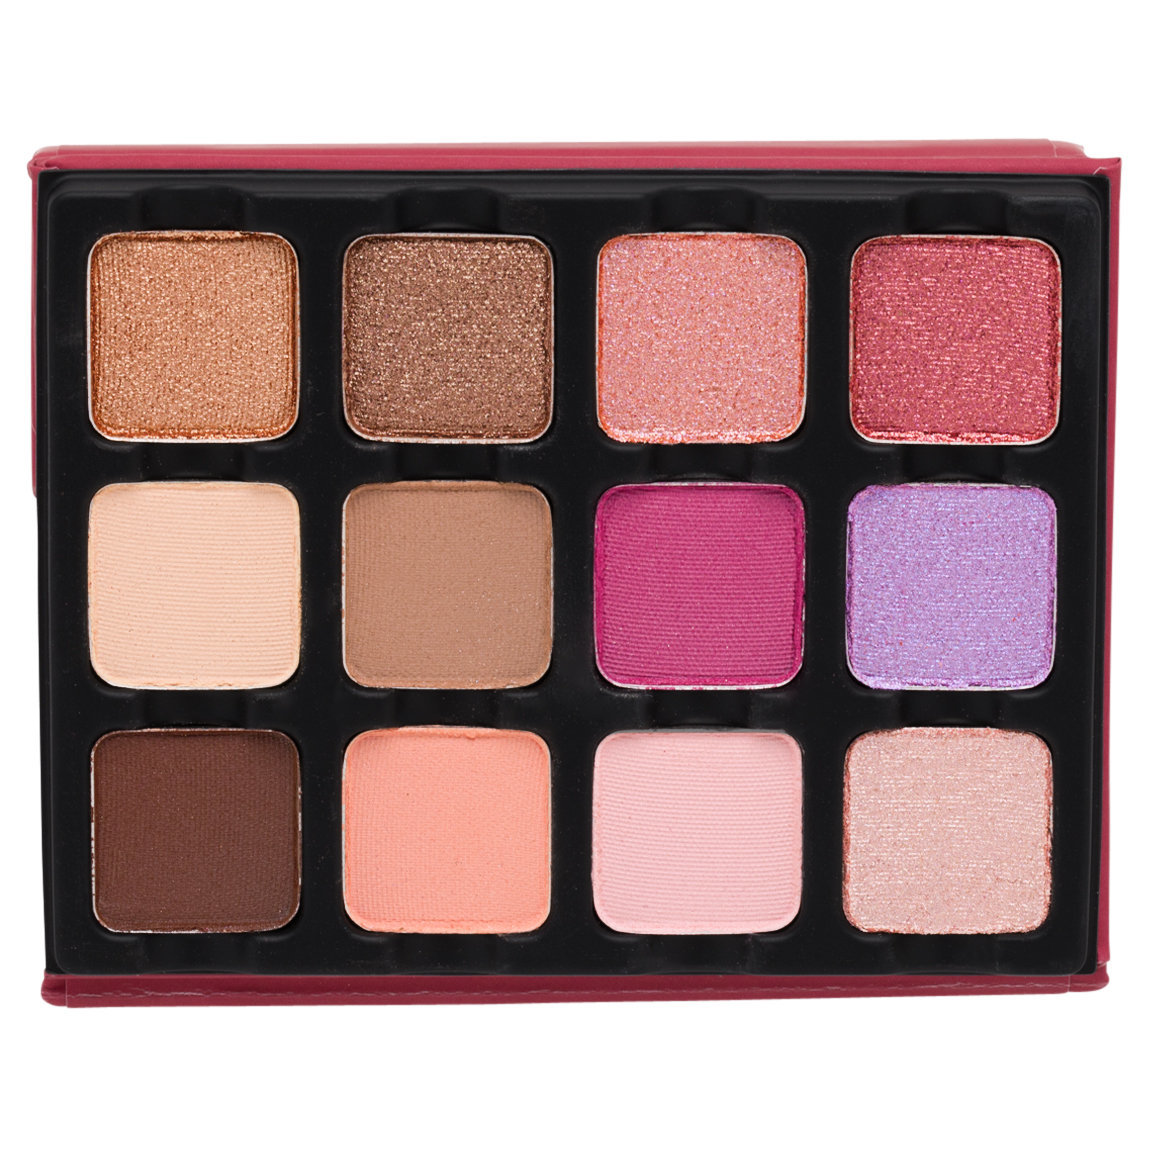 Viseart Rosé EDIT Eye Shadow Palette product smear.